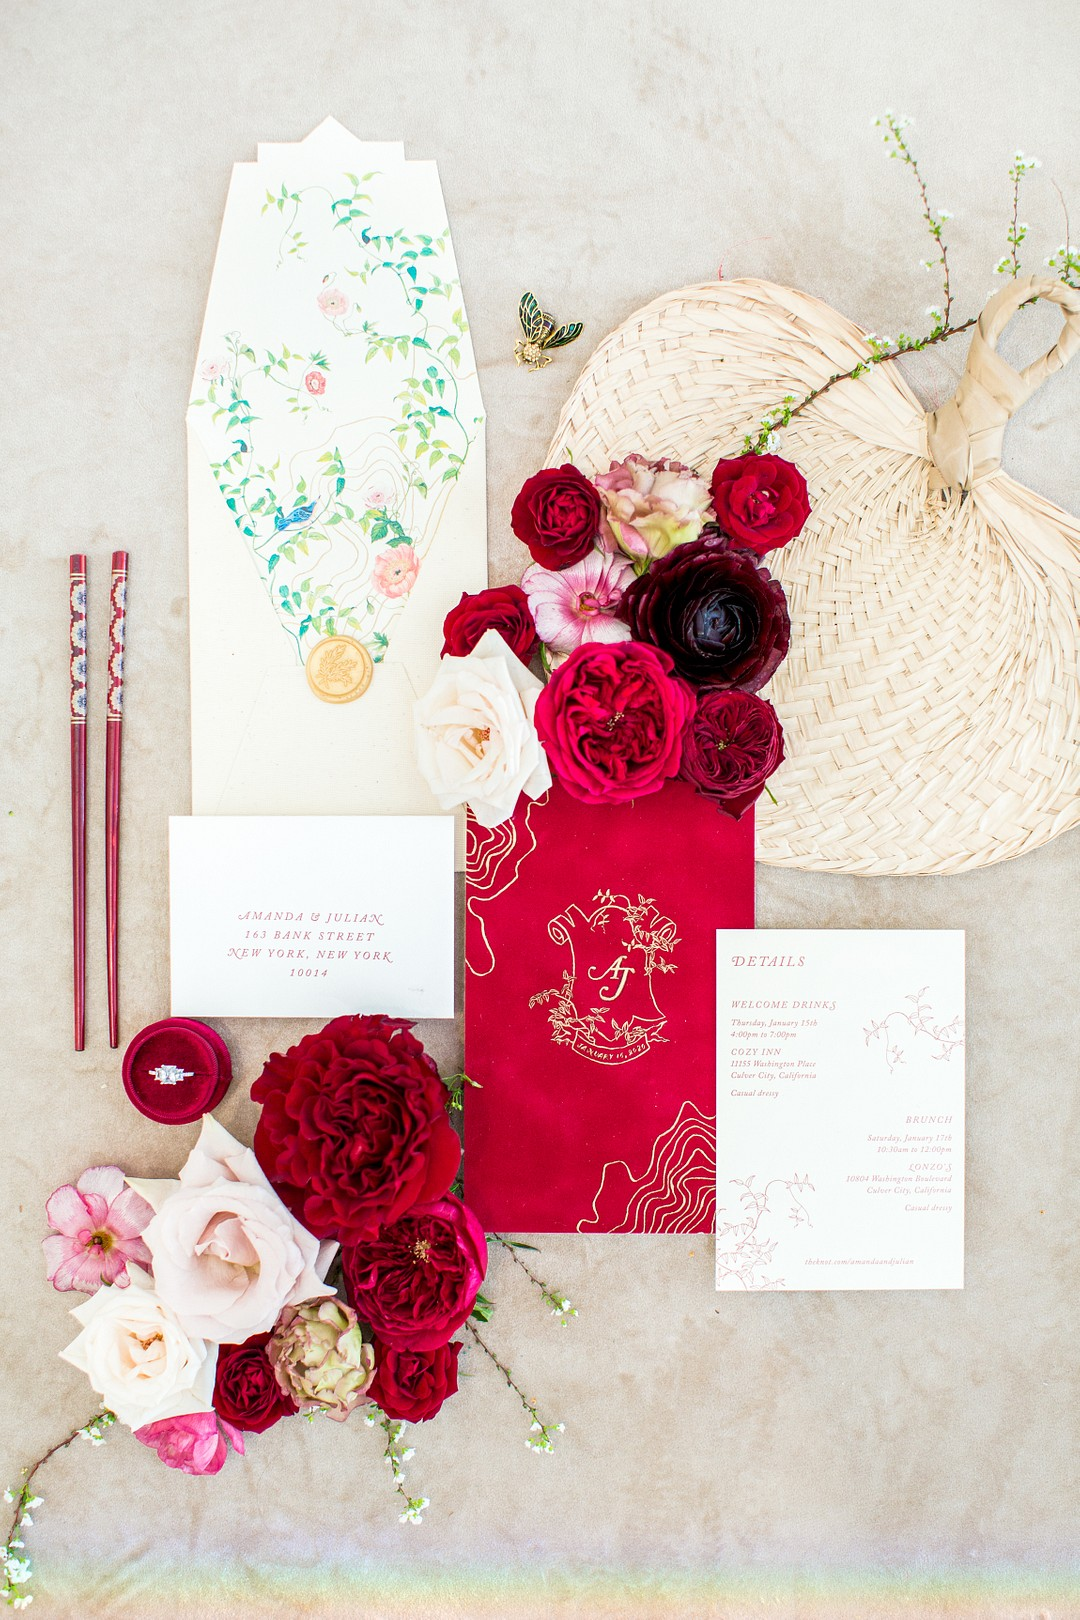 red chopstickd, red vow book and red roses for a chinese new year wedding